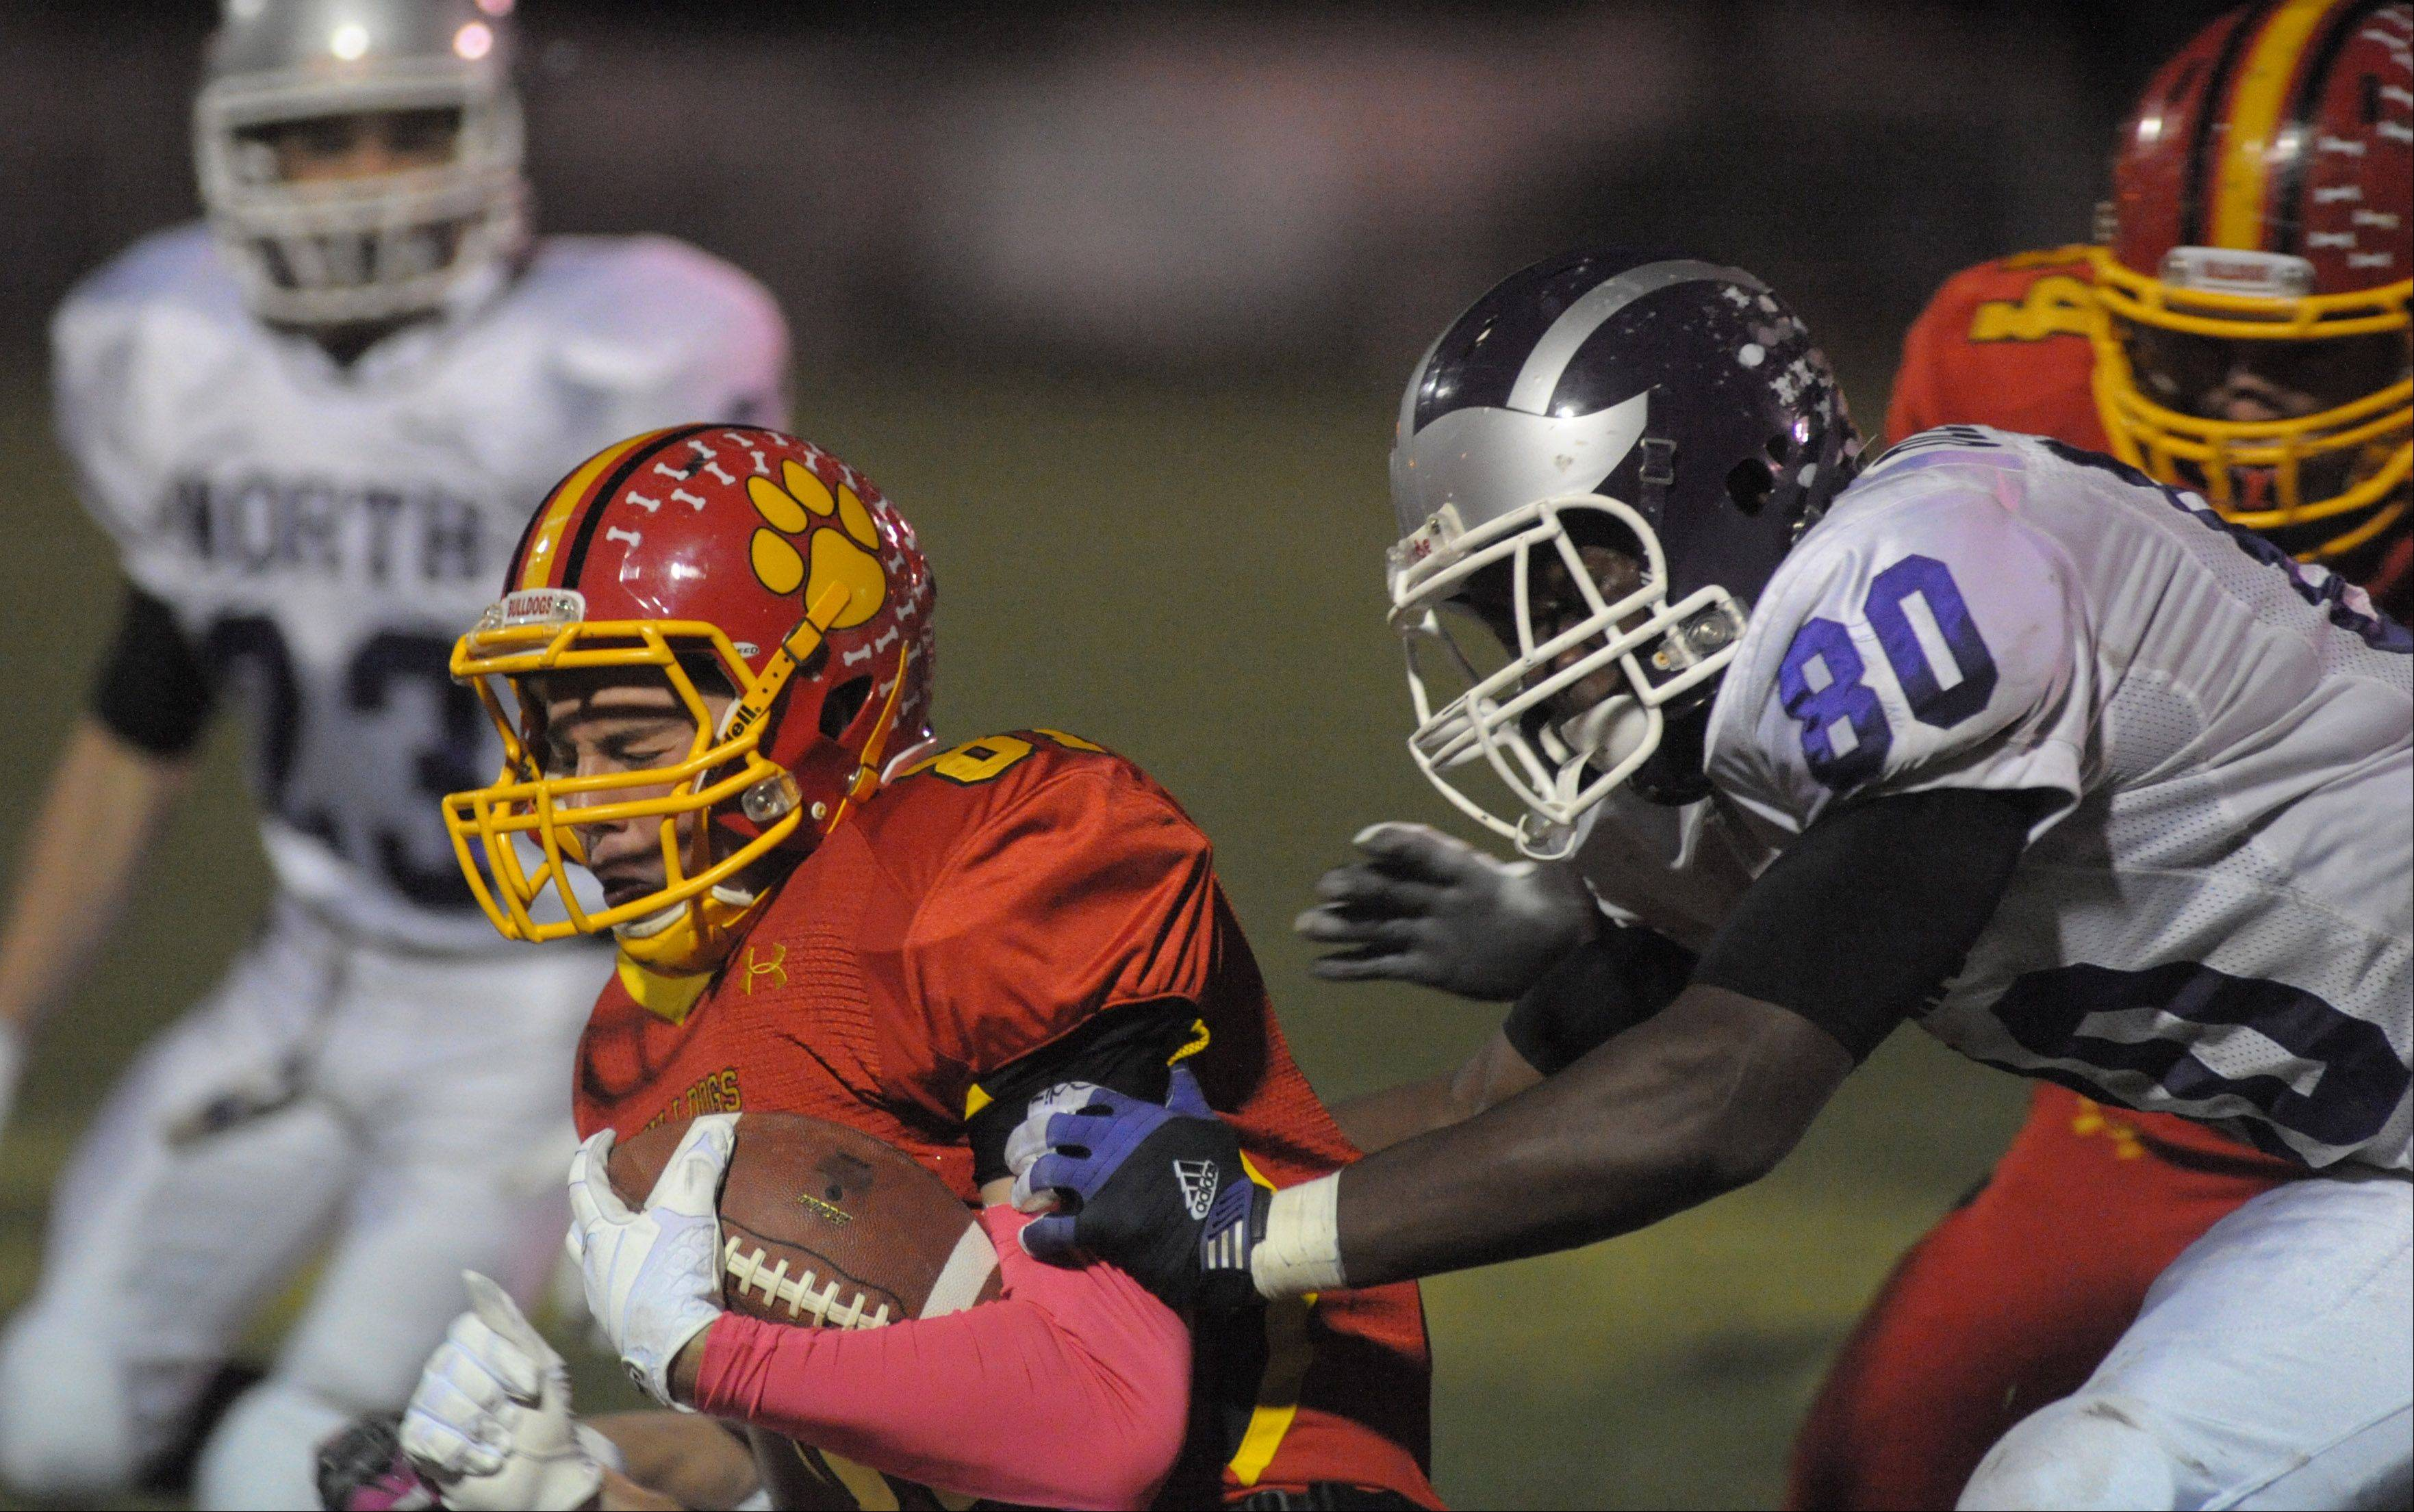 Downers Grove North�s Richard Olekanma takes down Batavia�s Jason Toth in the fourth quarter of playoff game on Friday, October 26.